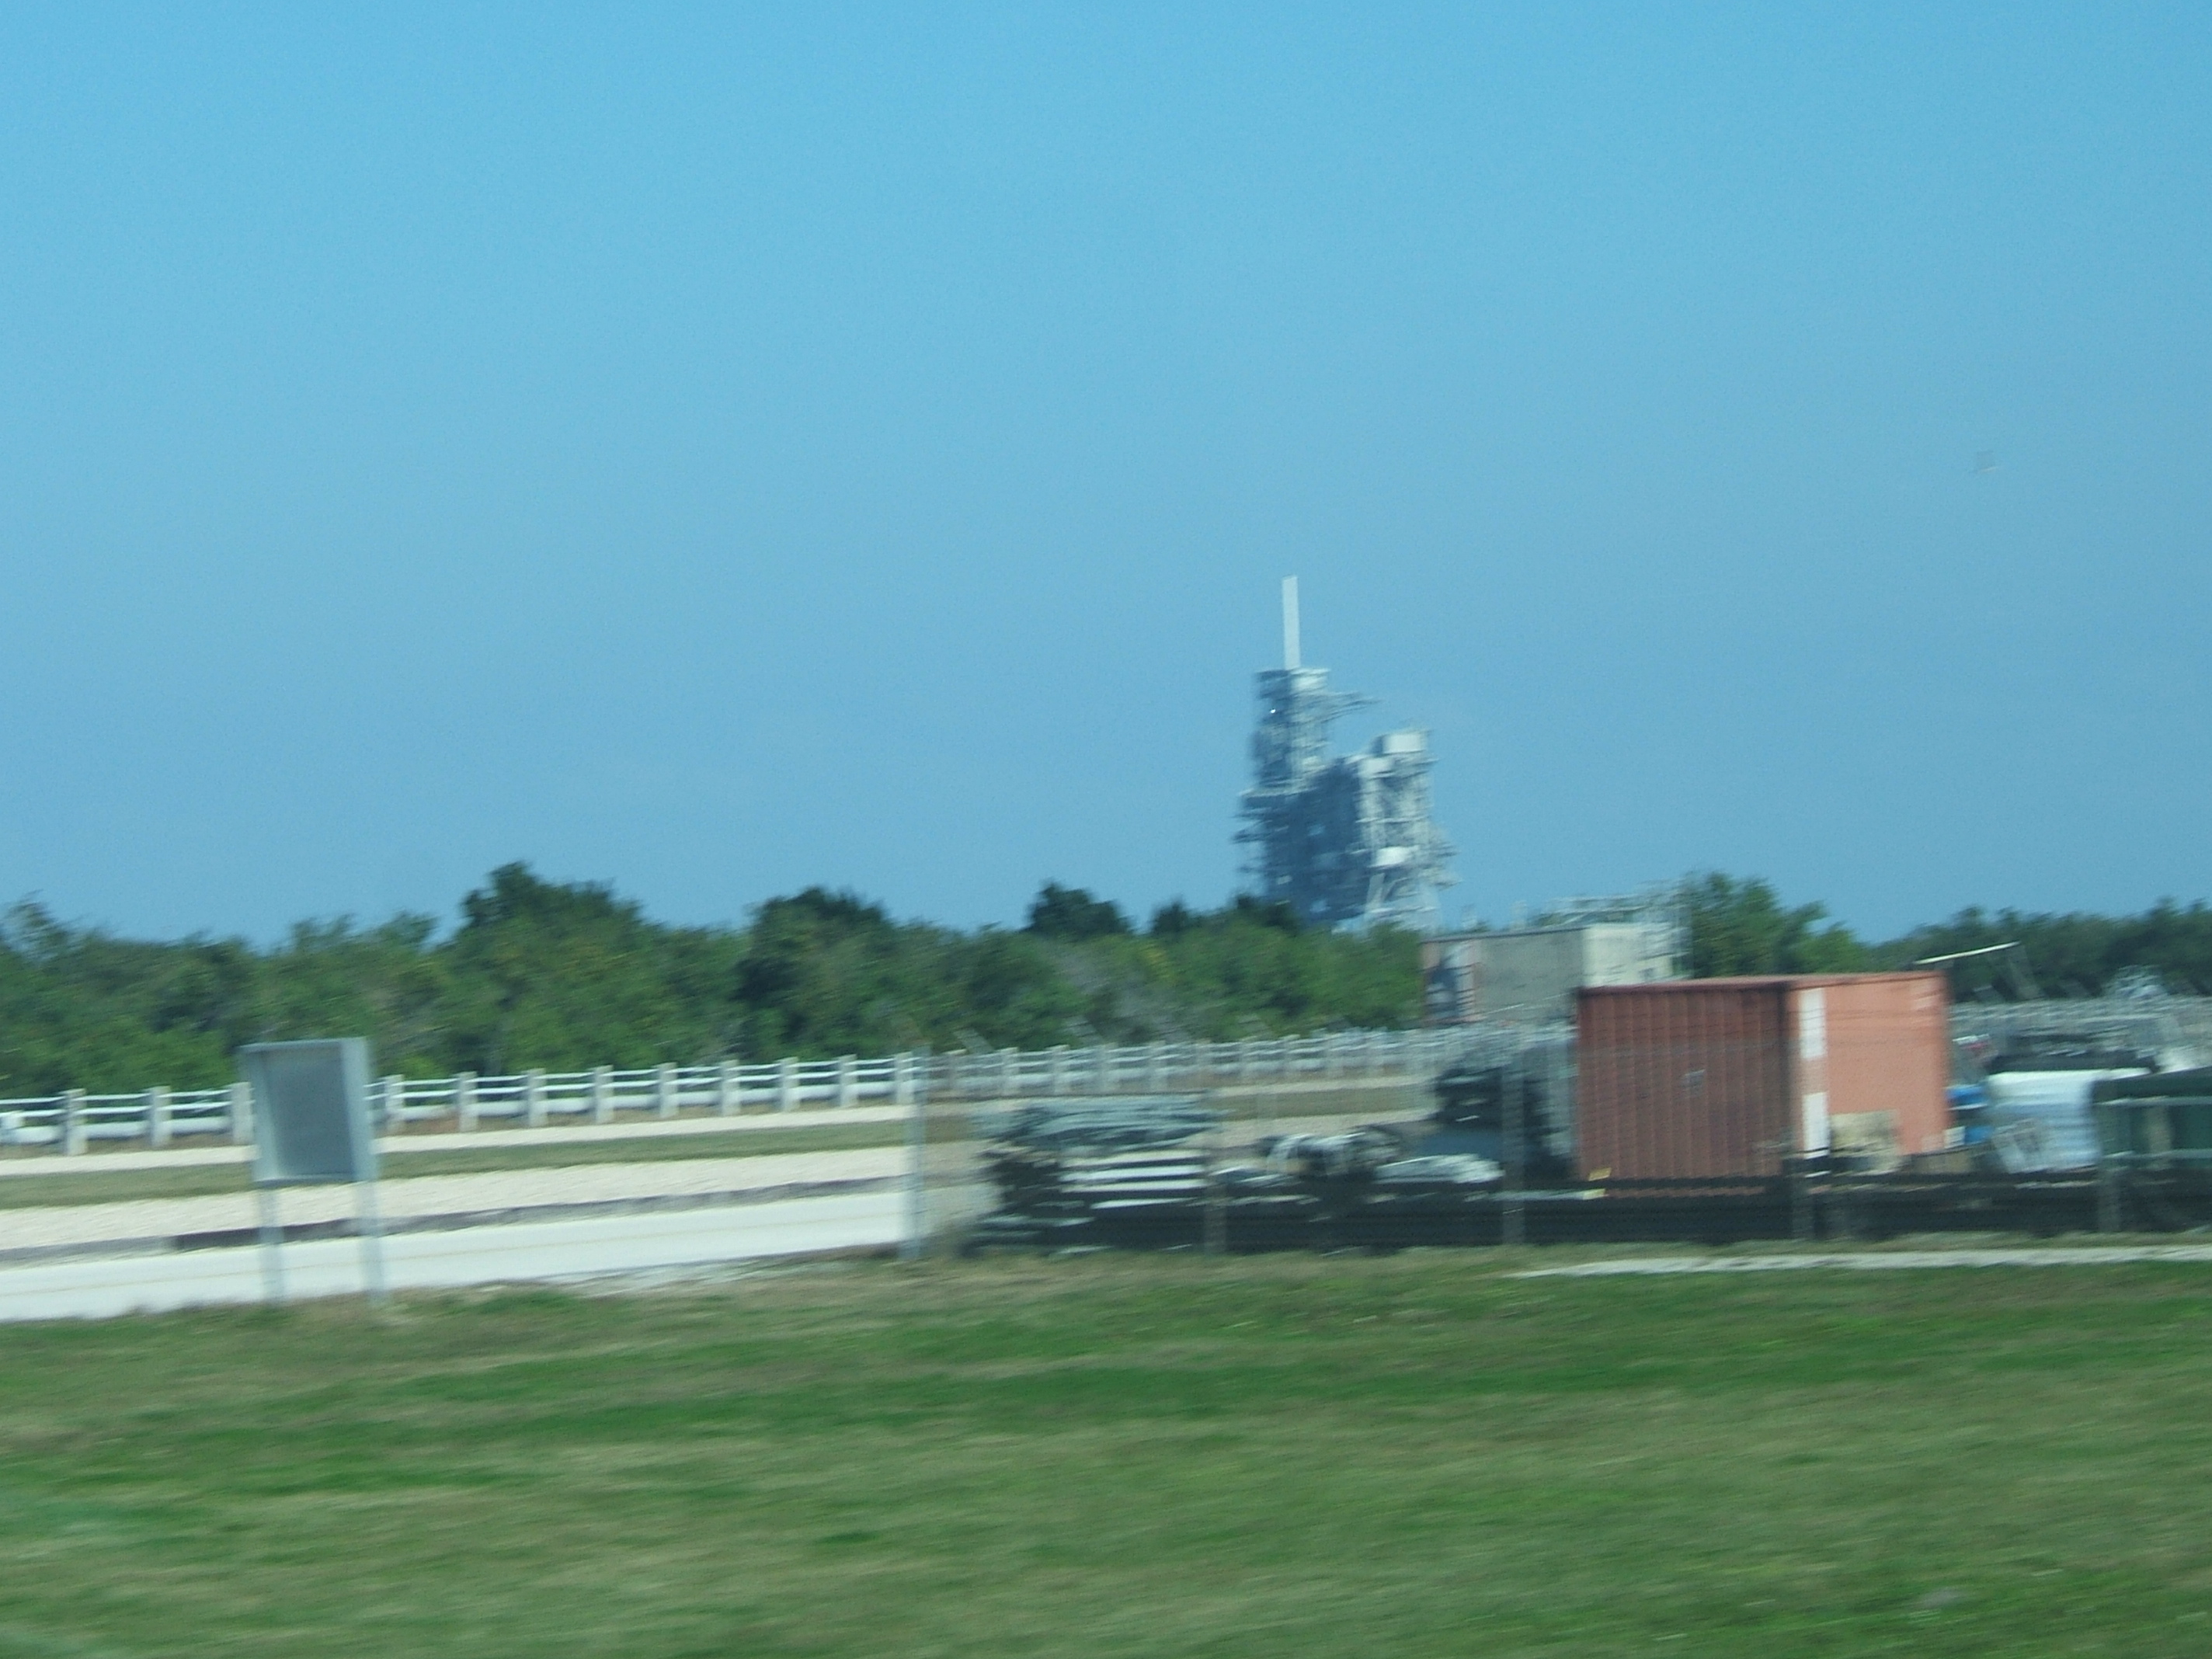 nasa launch pad password - photo #12